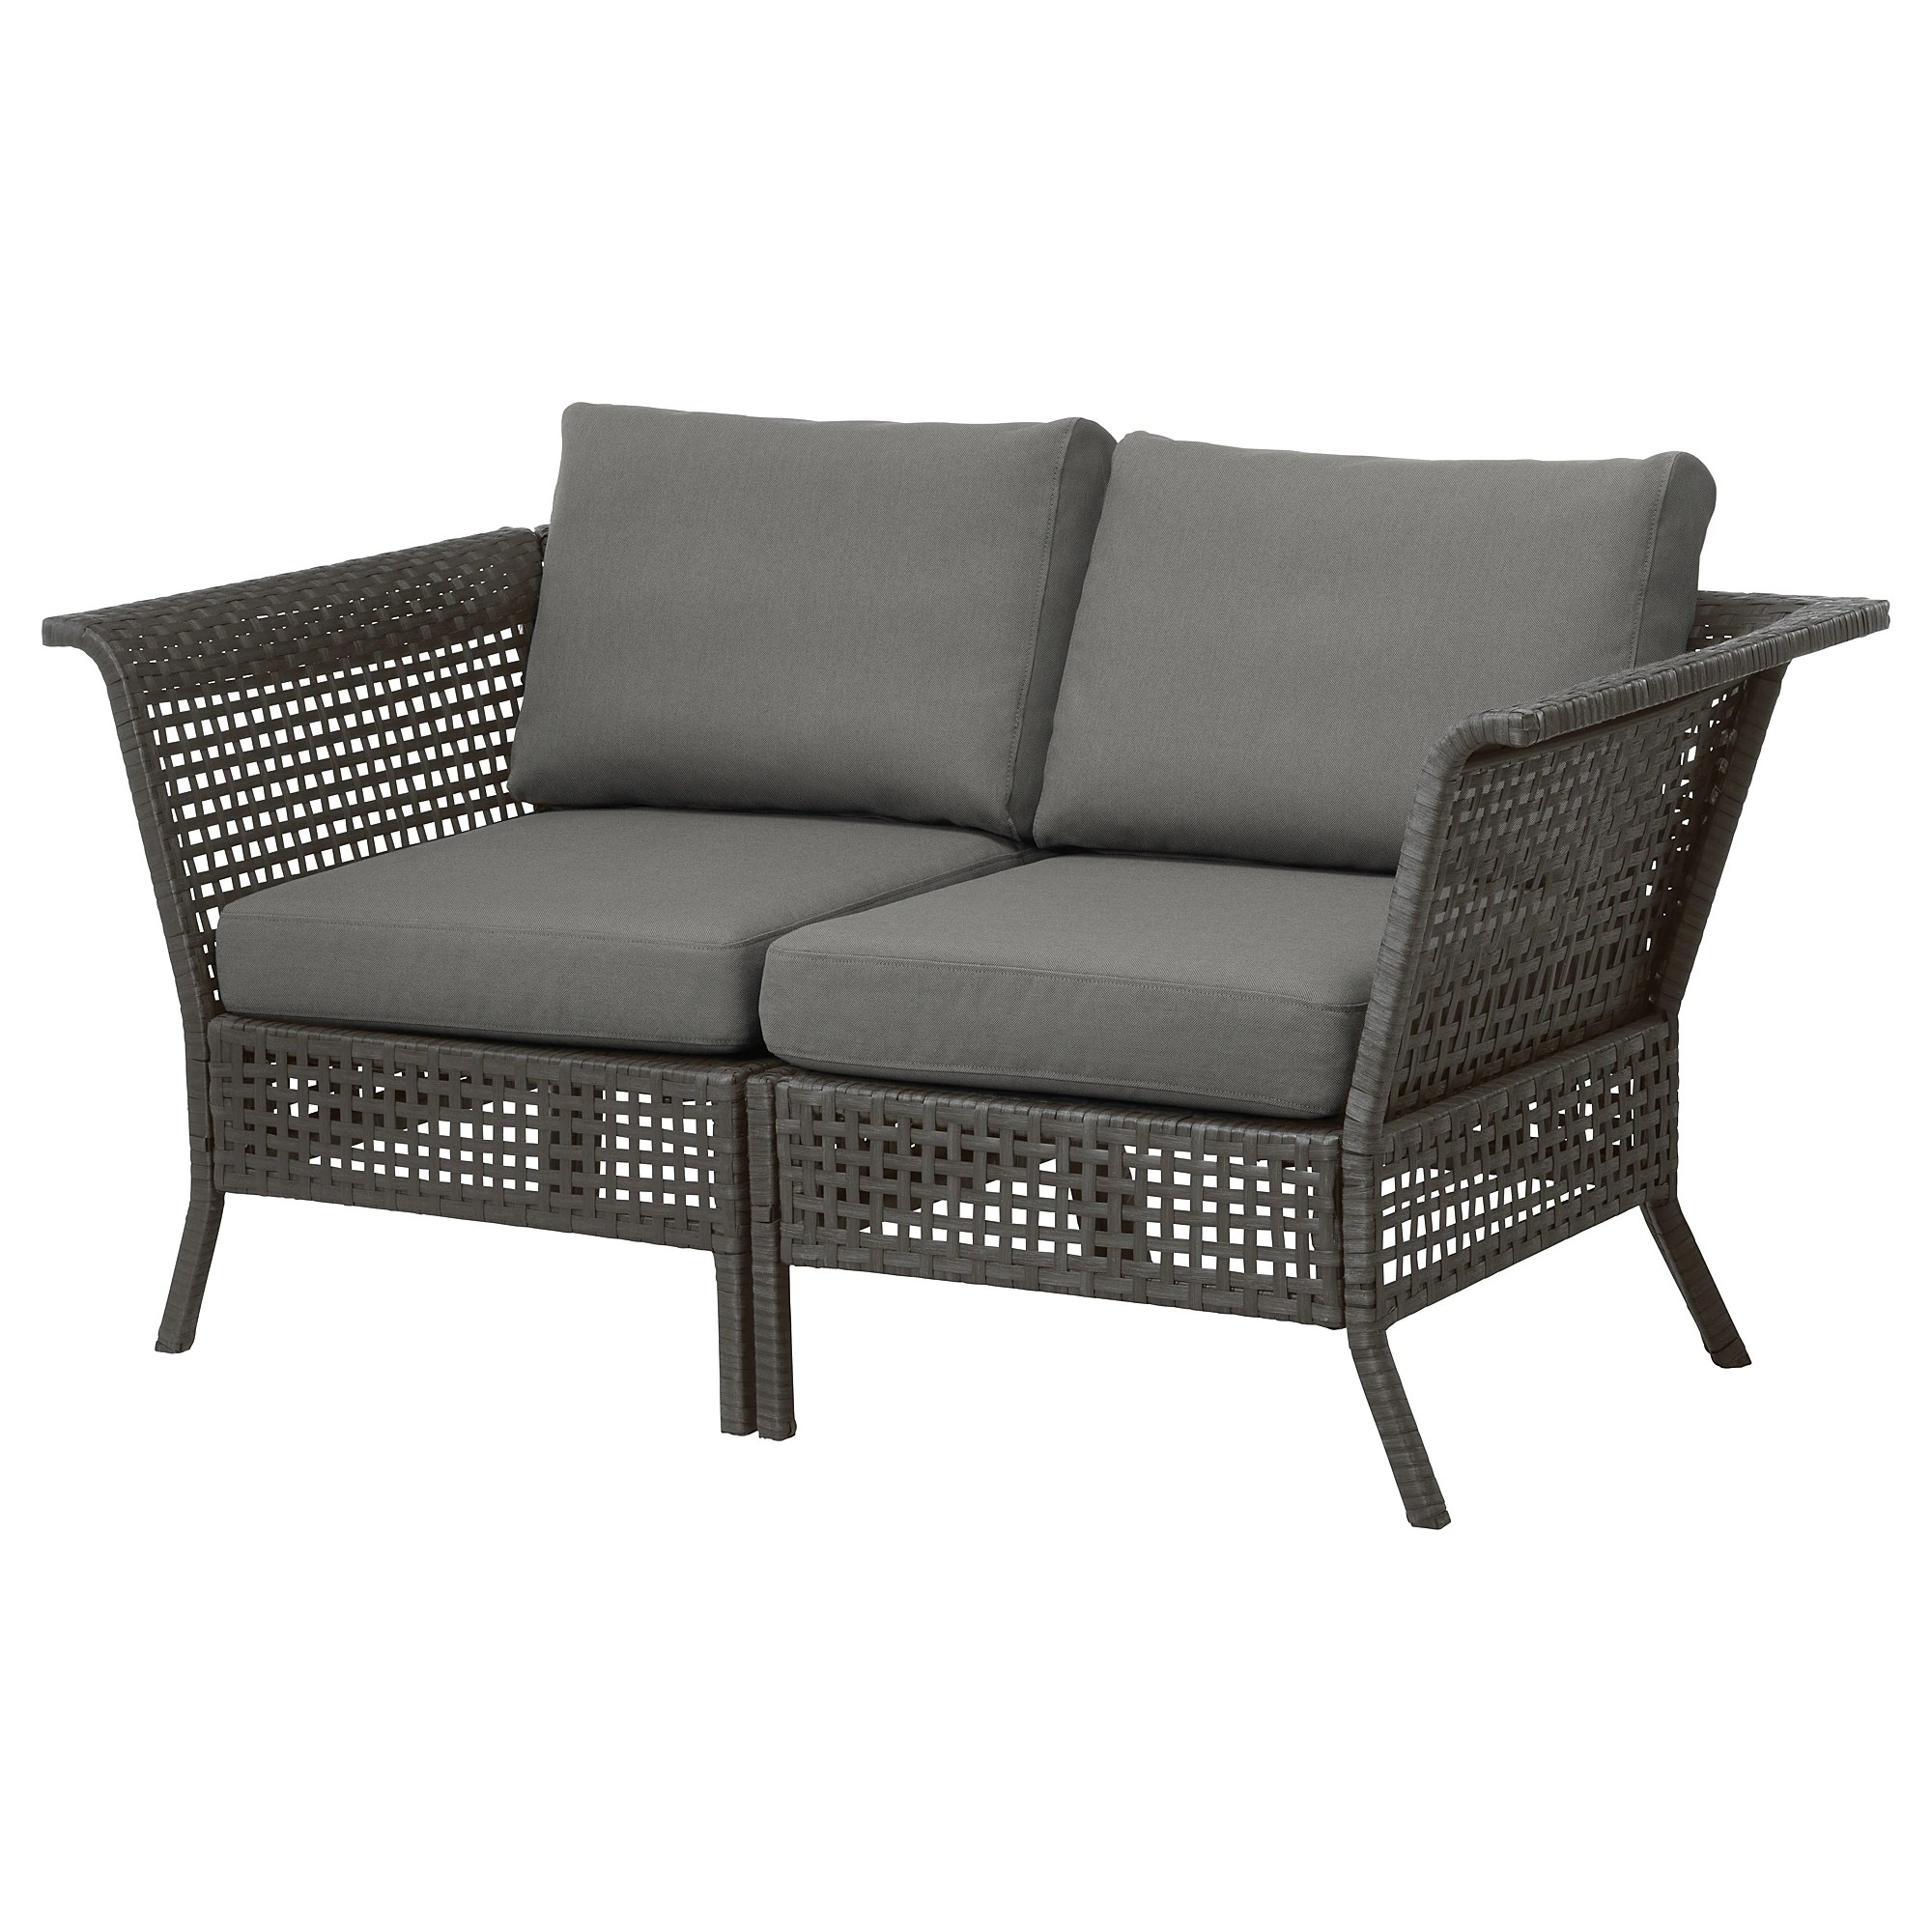 Outdoor Sofa Kungsholmen 2 Seat Modular Sofa Outdoor Black Brown Frösön Duvholmen Dark Gray